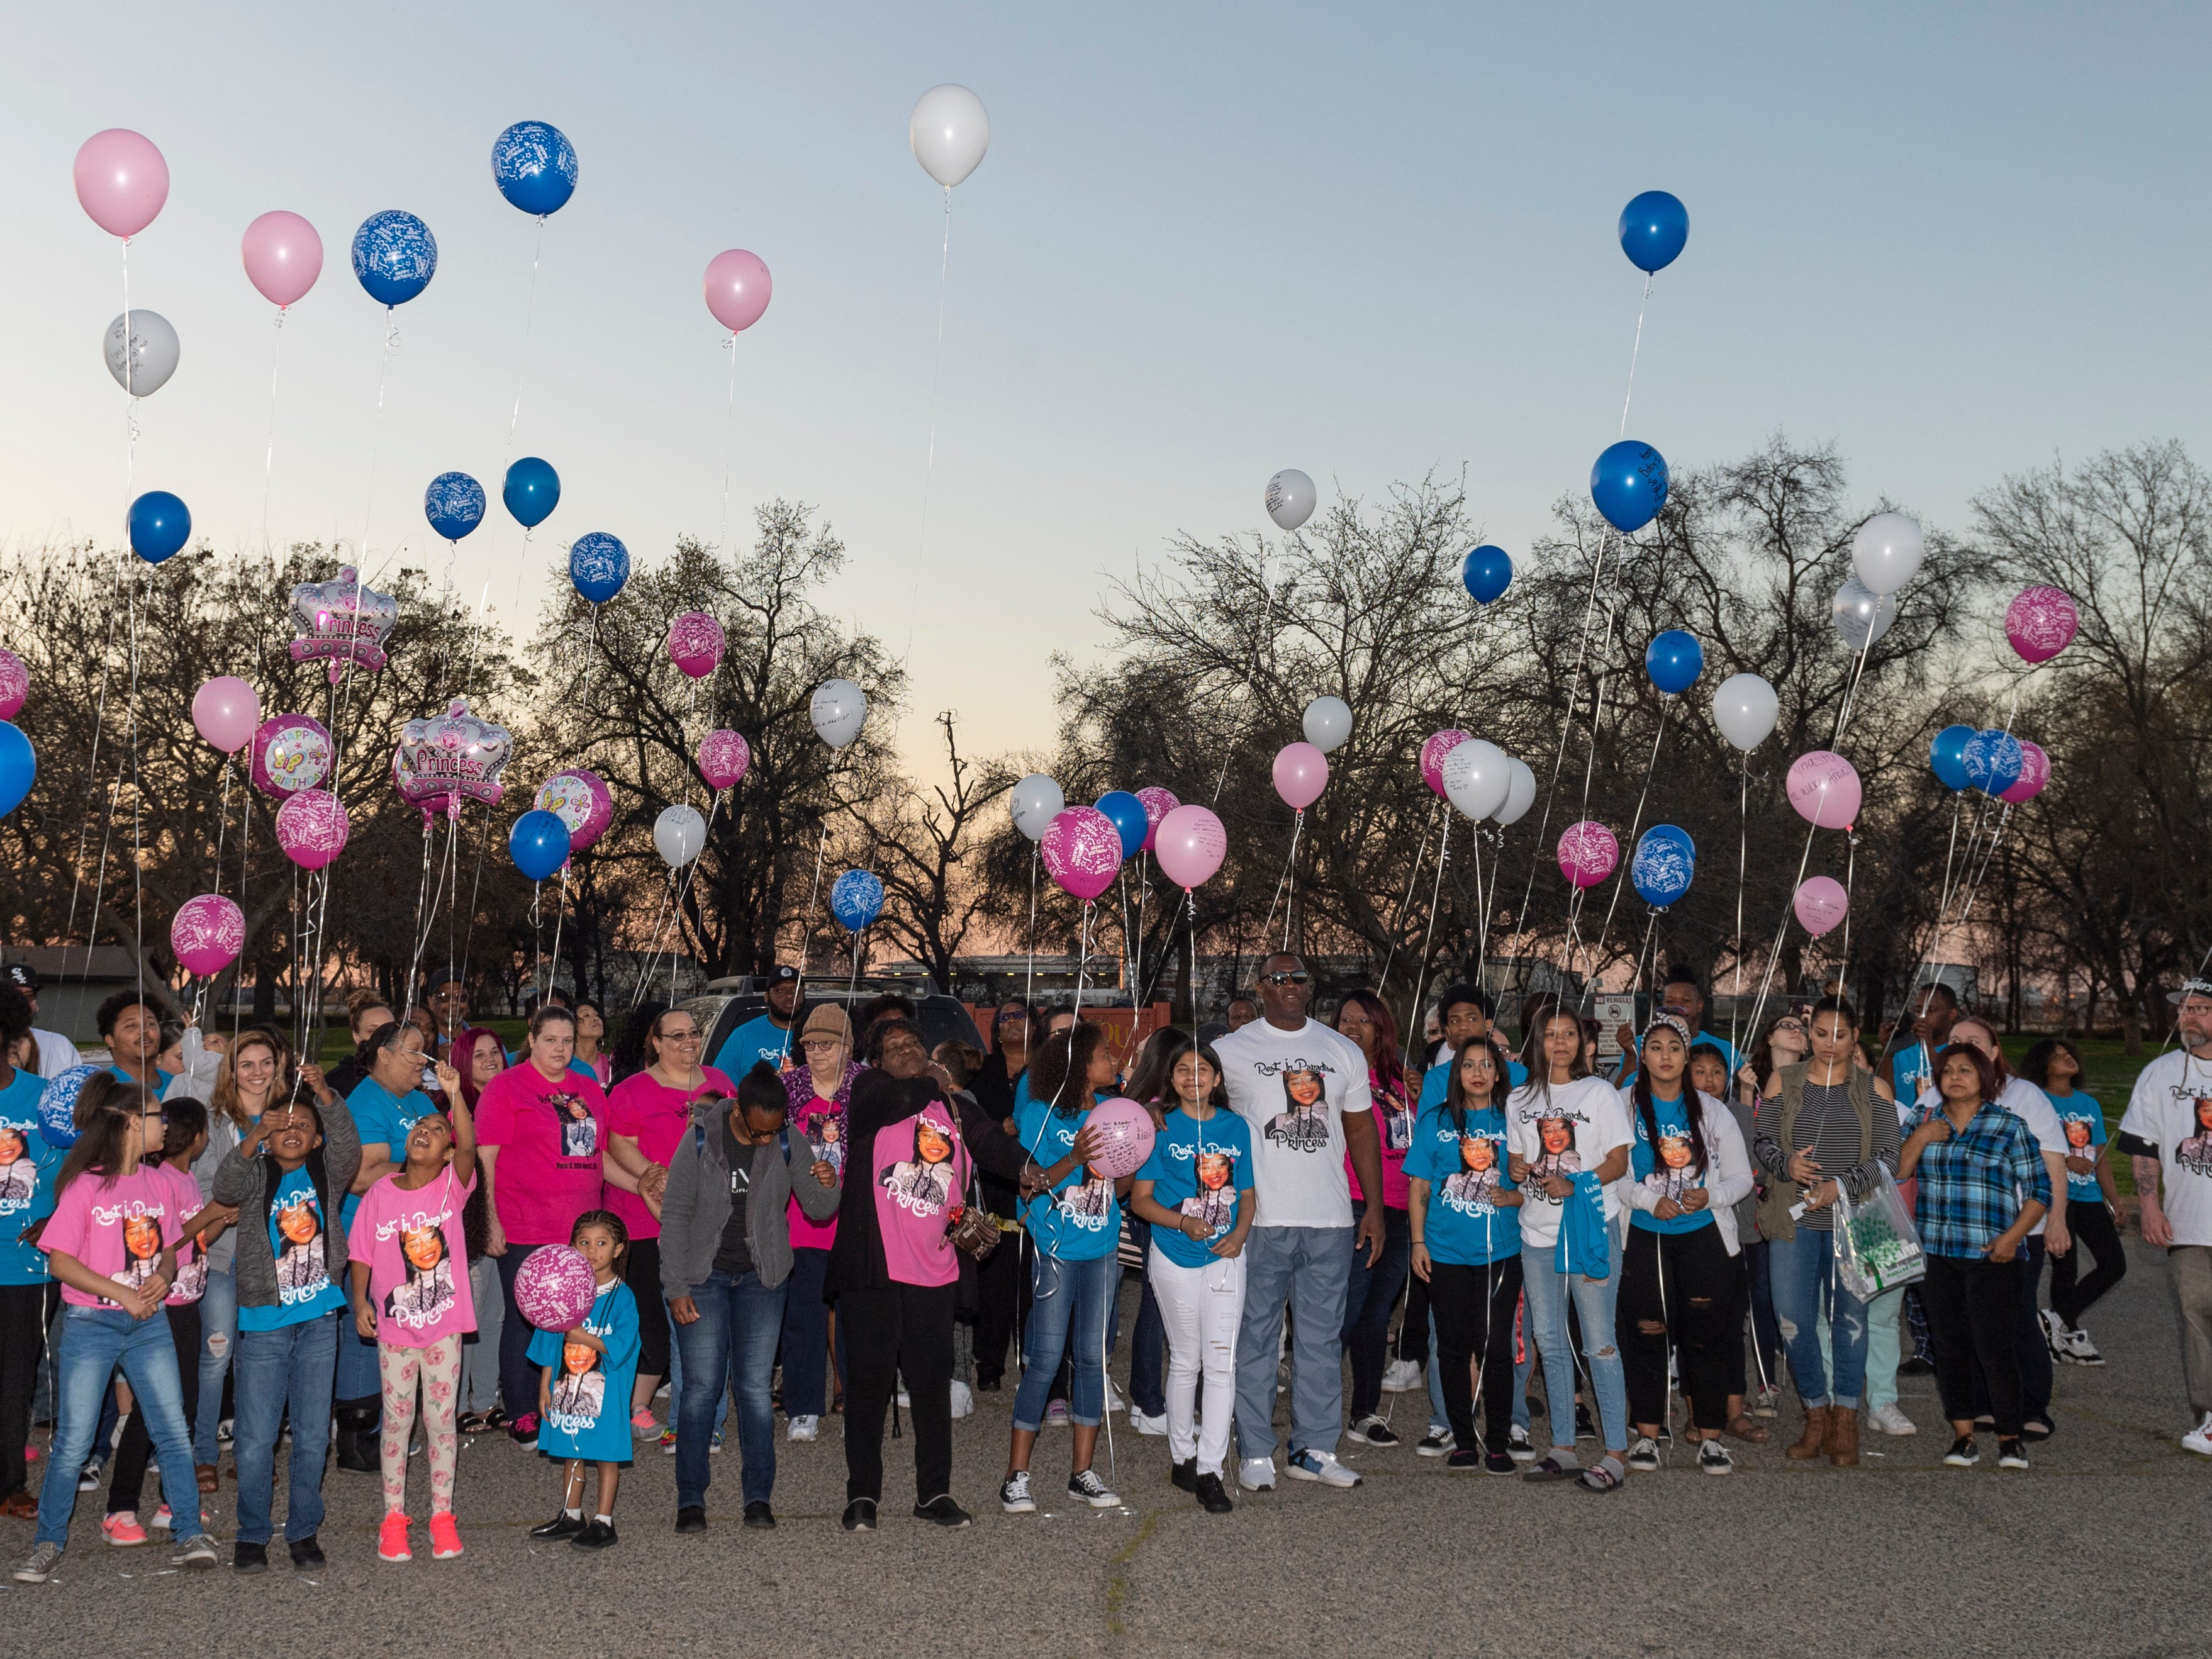 Family and friends of Dynasty Alexander gathered at Elk Bayou Regional Park on Saturday, March 16, 2019 for birthday cake and a candle light vigil in her memory. Messages on balloons were released after a moment of silence. Alexander's body was found in an orchard outside of the city on March 3. She had been strangled and shot.